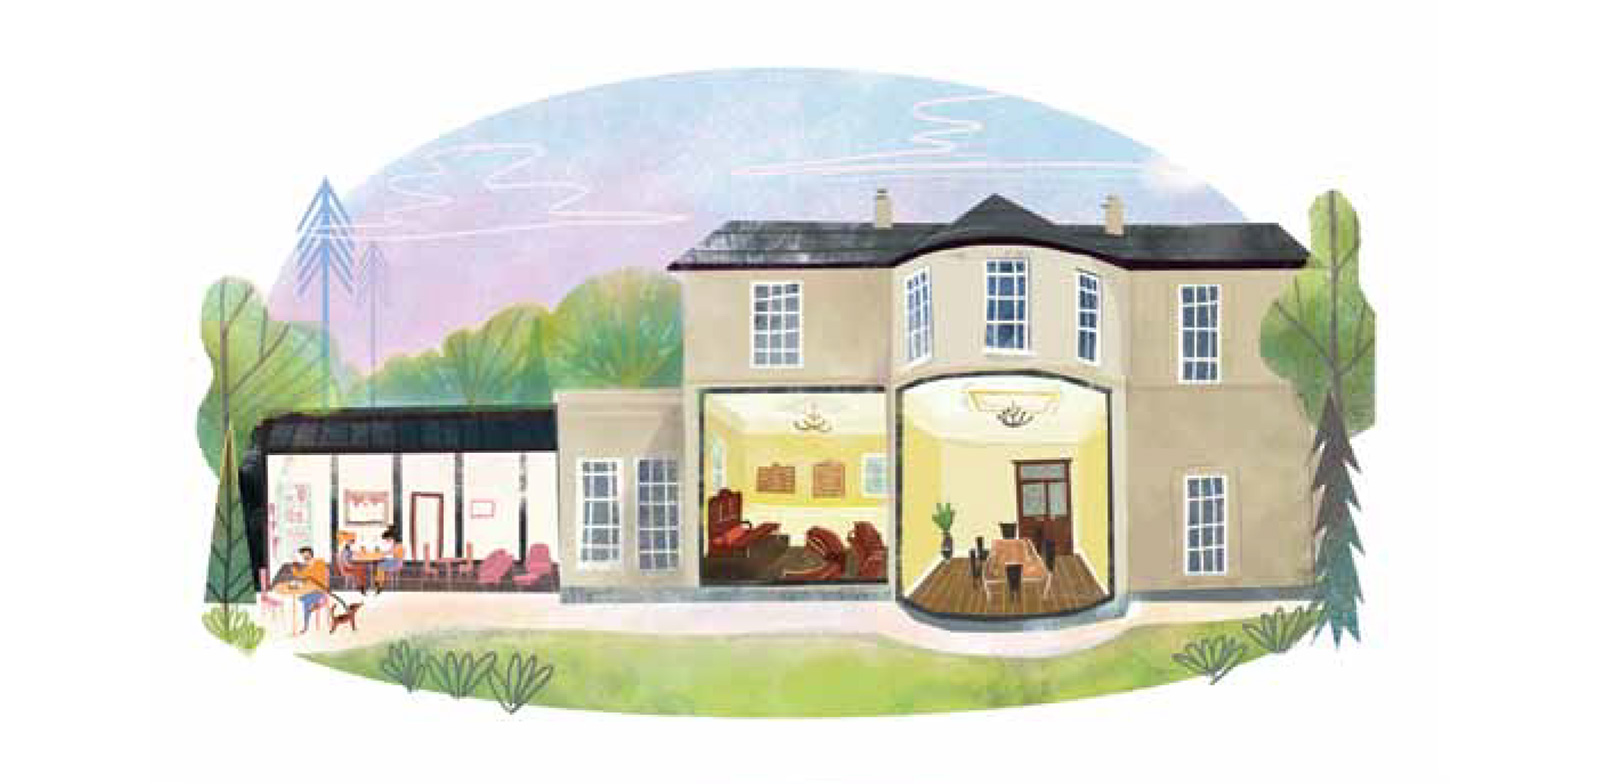 Bedwellty House Illustration